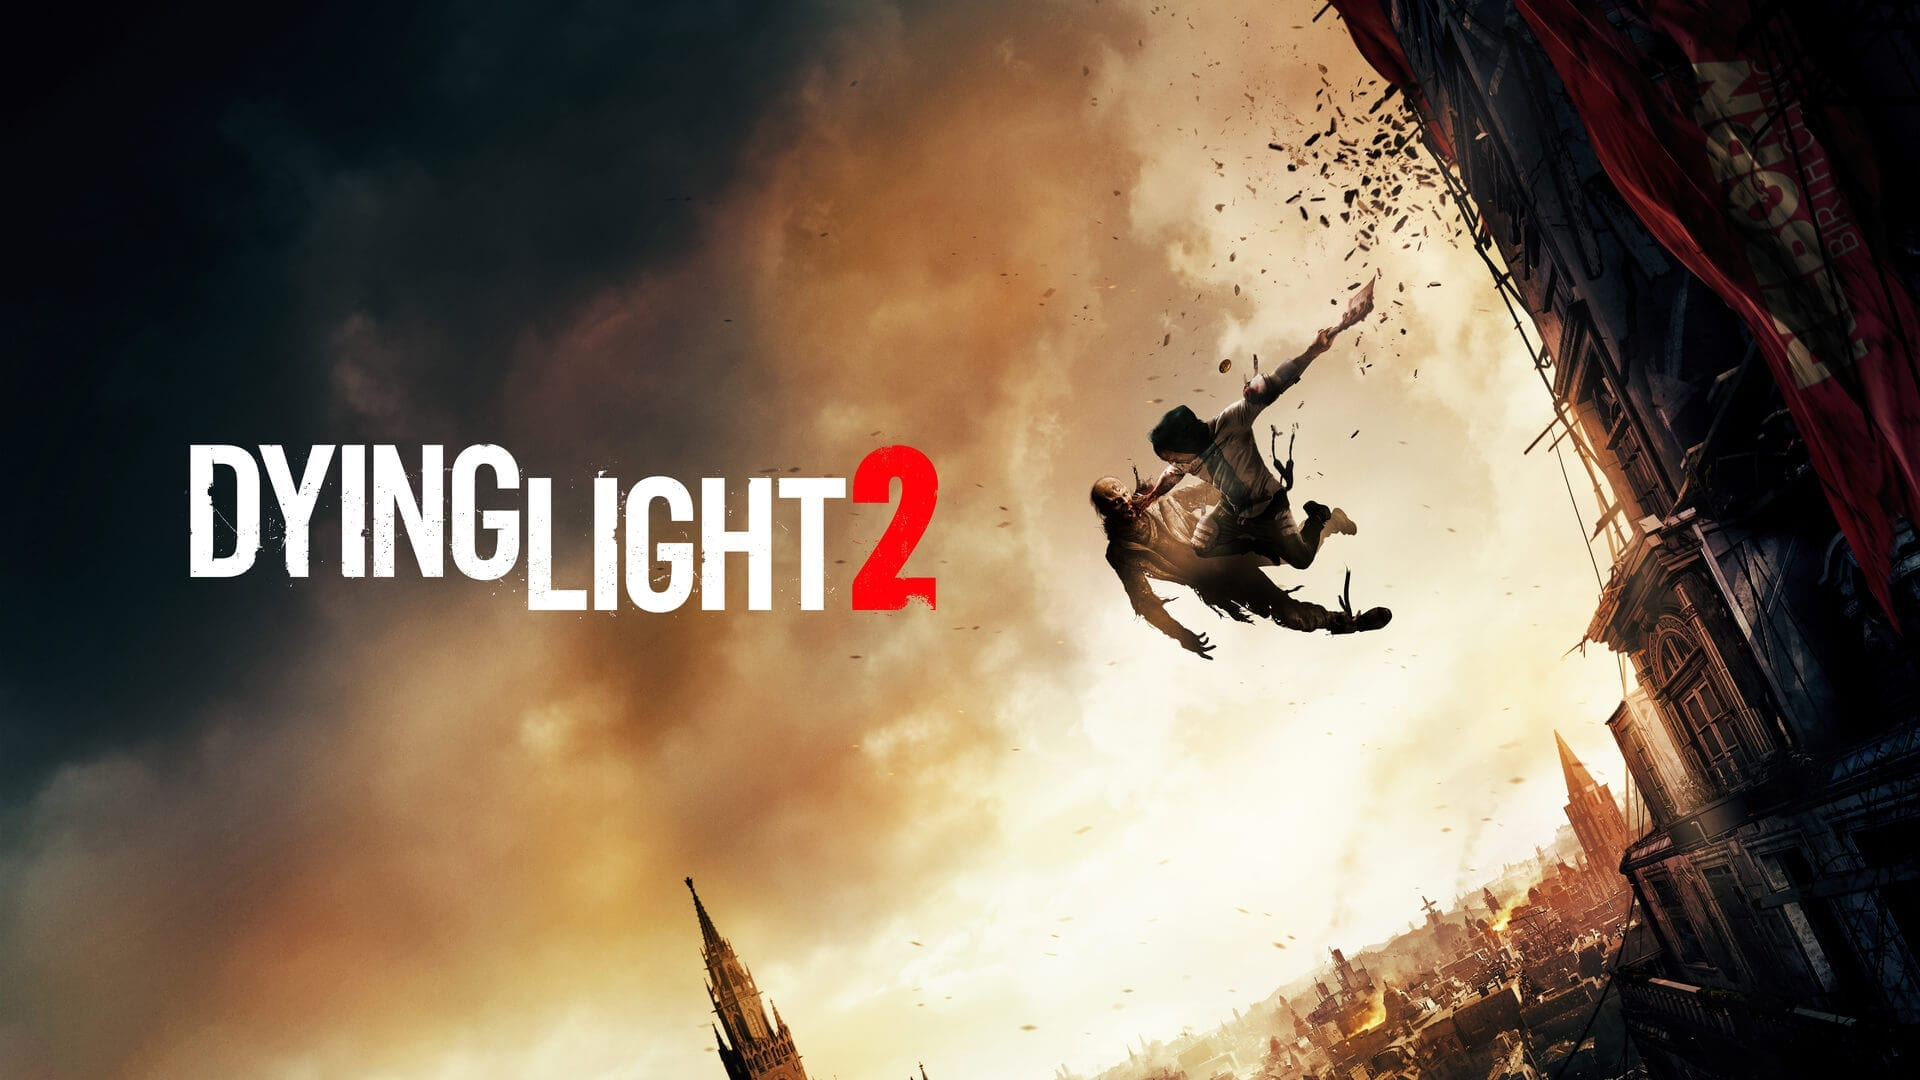 Dying Light 2 Will Be Developer's 'Most Ambitious Project To Date'